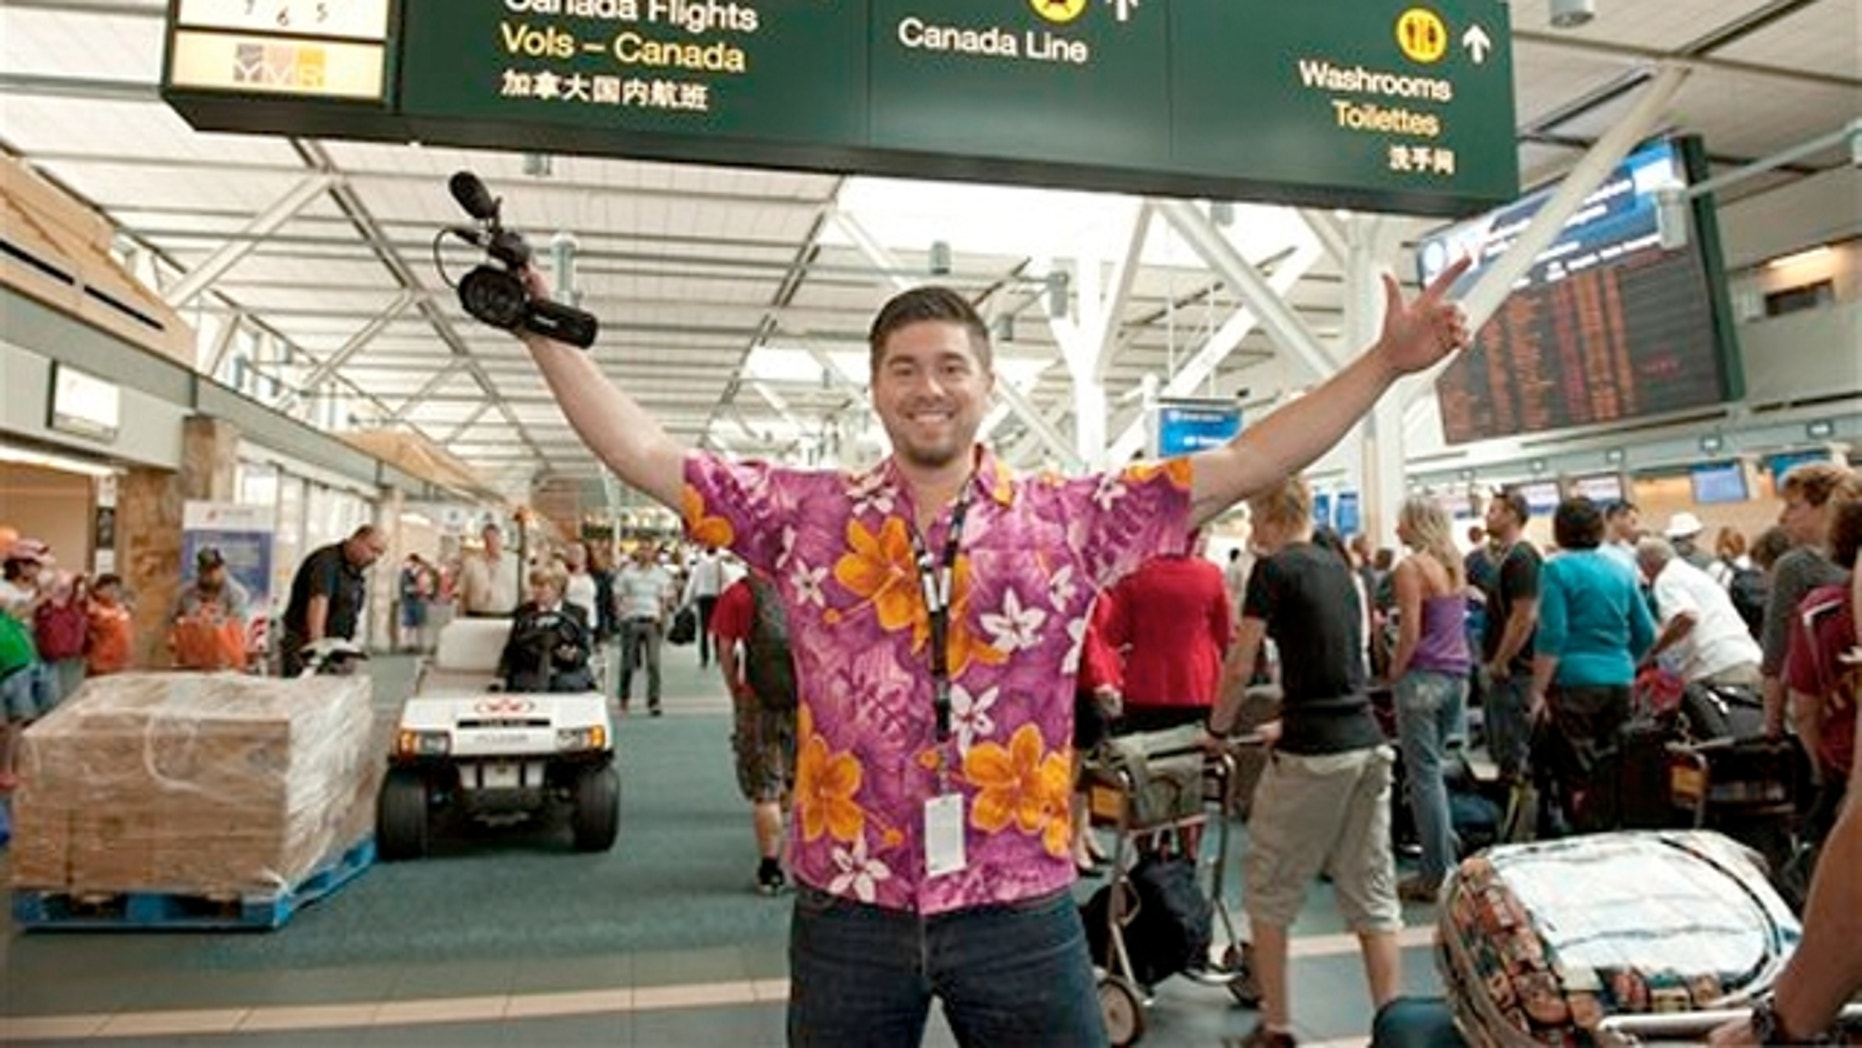 August 2011: Jaeger Mah at the Vancouver International Airport in Canada, where he's been living since he embarked on his unusual sojourn as the winner of a contest sponsored by the airport to mark its 80th year.